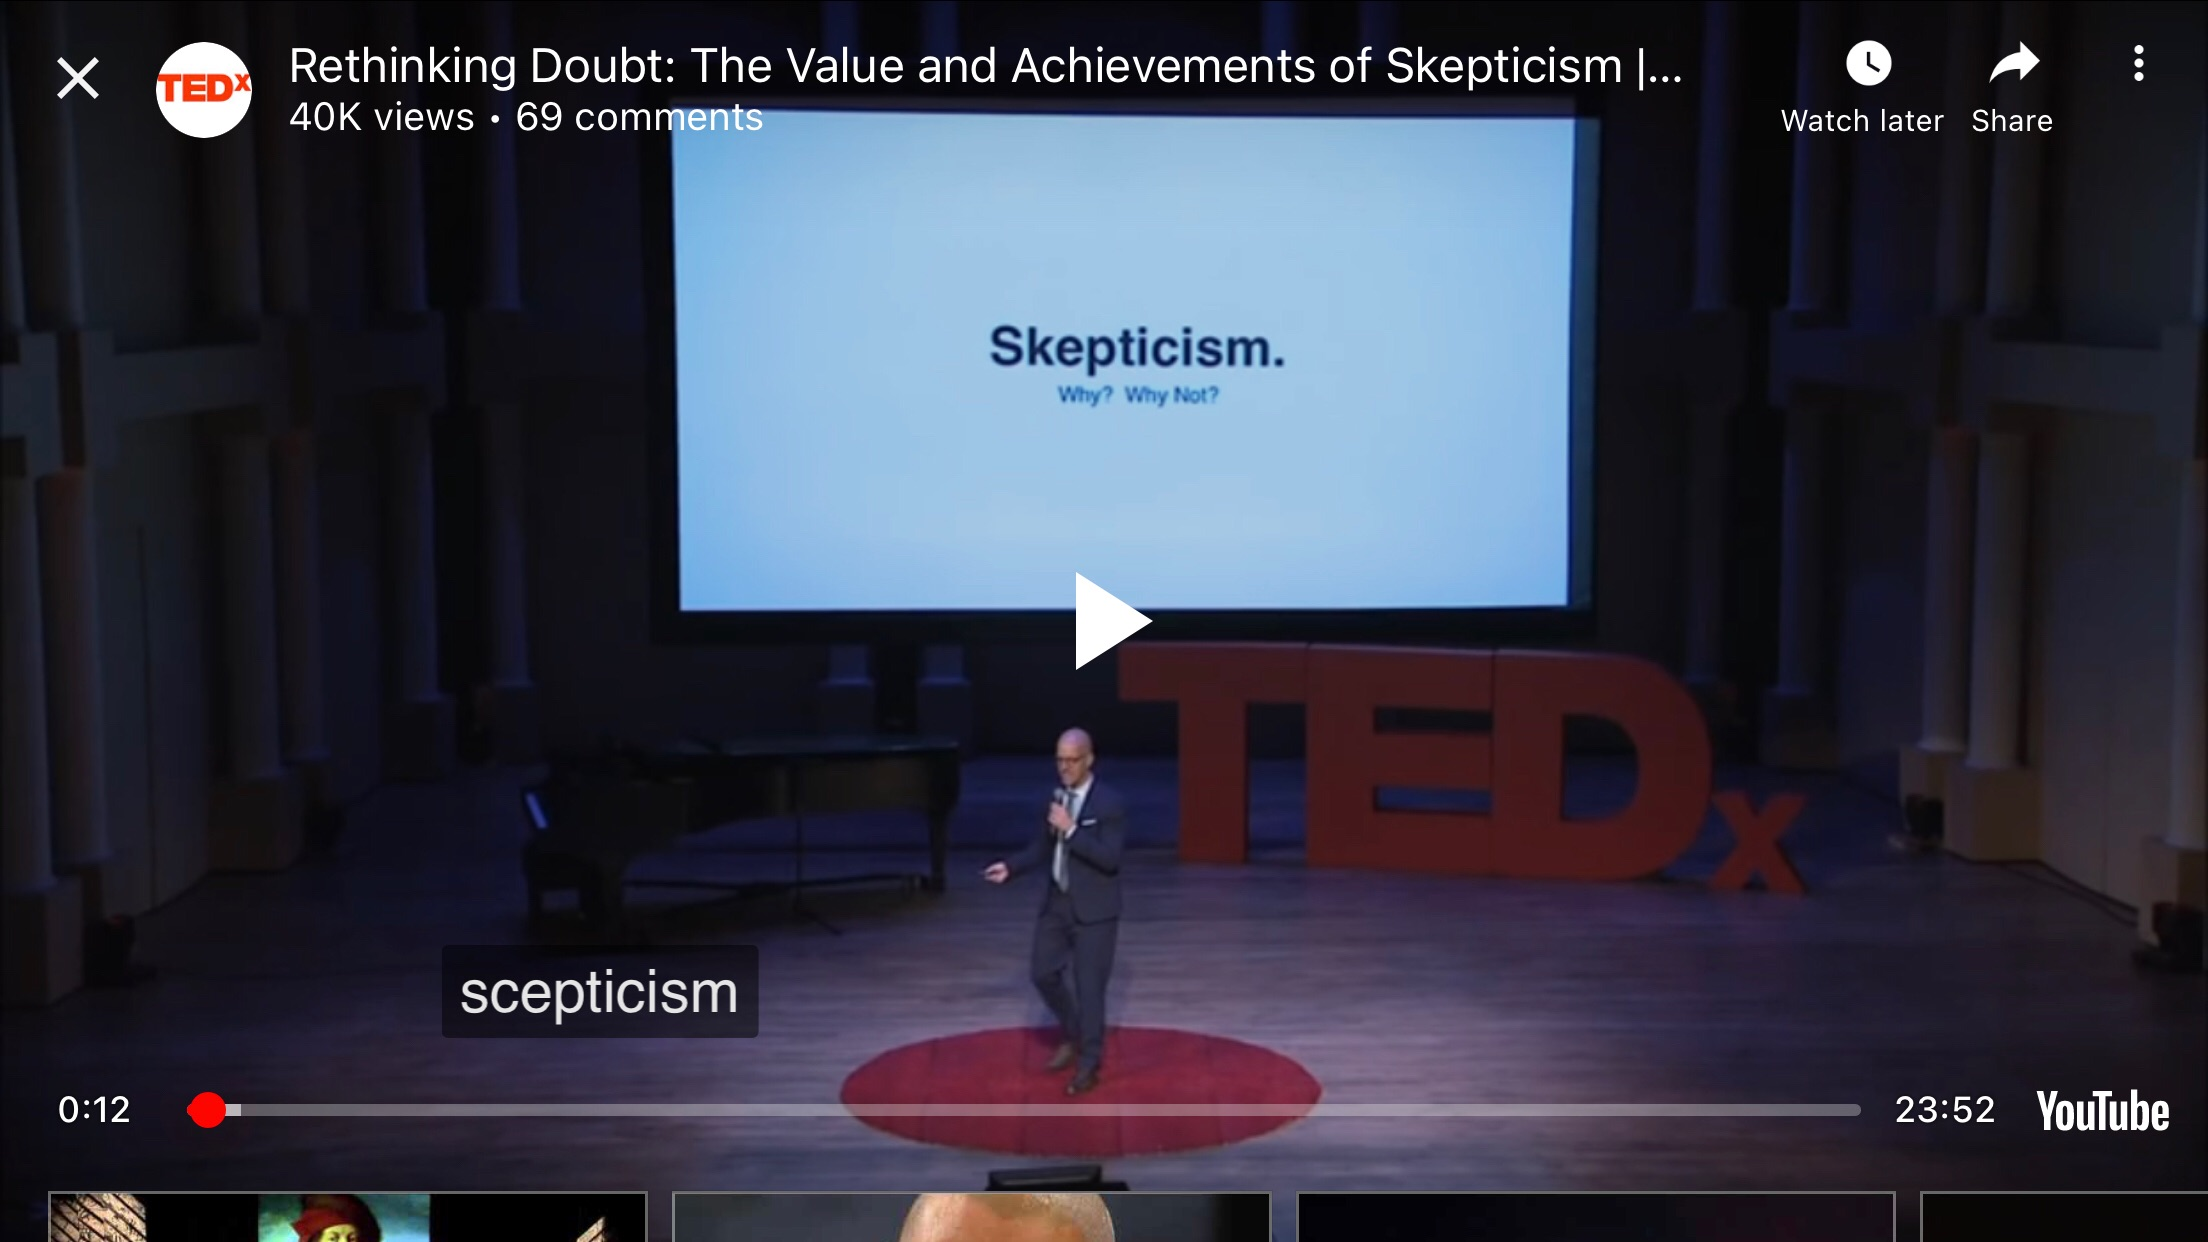 This TED Talk (Rethinking doubt) got me thinking